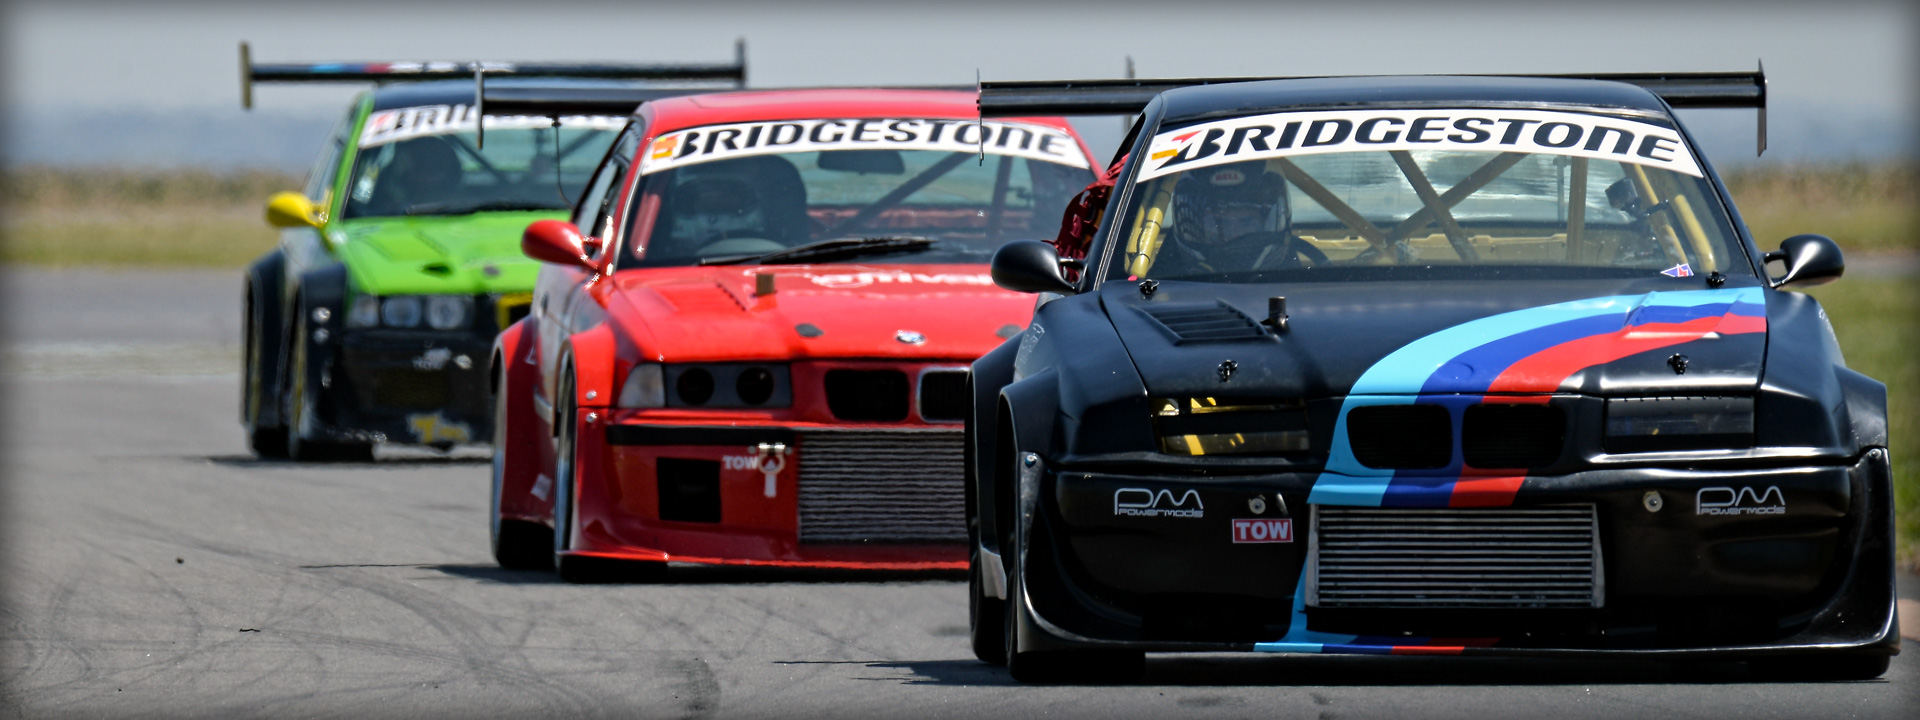 Bridgestone BMW Club Racing Series - Round 2 - Red Star - 2017-03-11 - Race Report